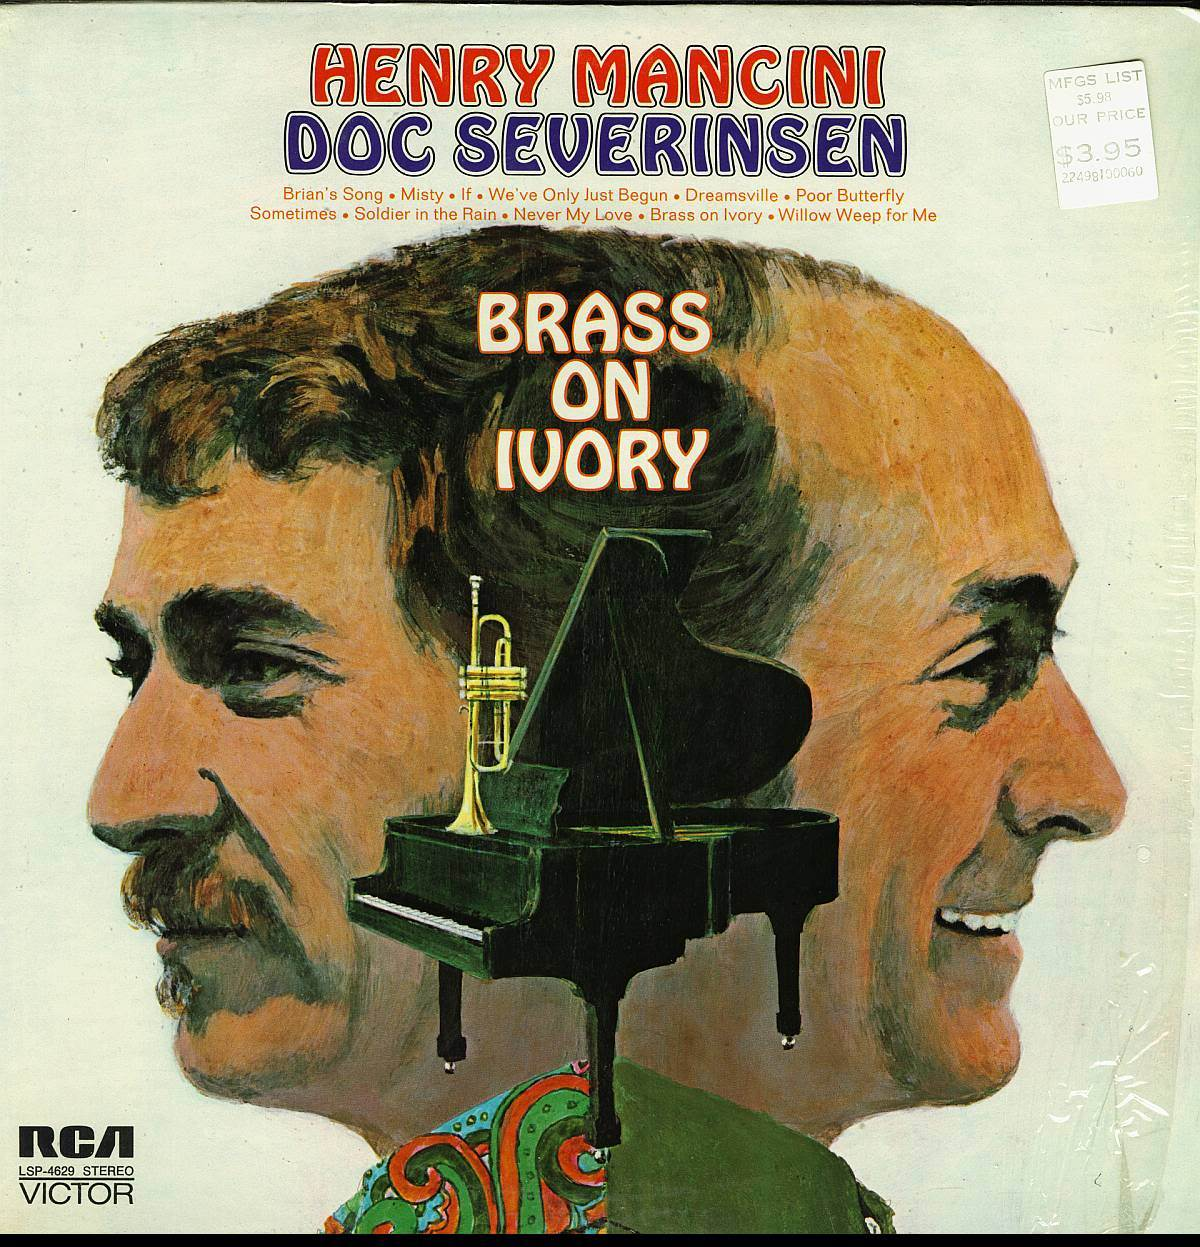 HENRY MANCINI DOC SEVERINSEN BRASS ON IVORY LP RCA LSP-4629 ST